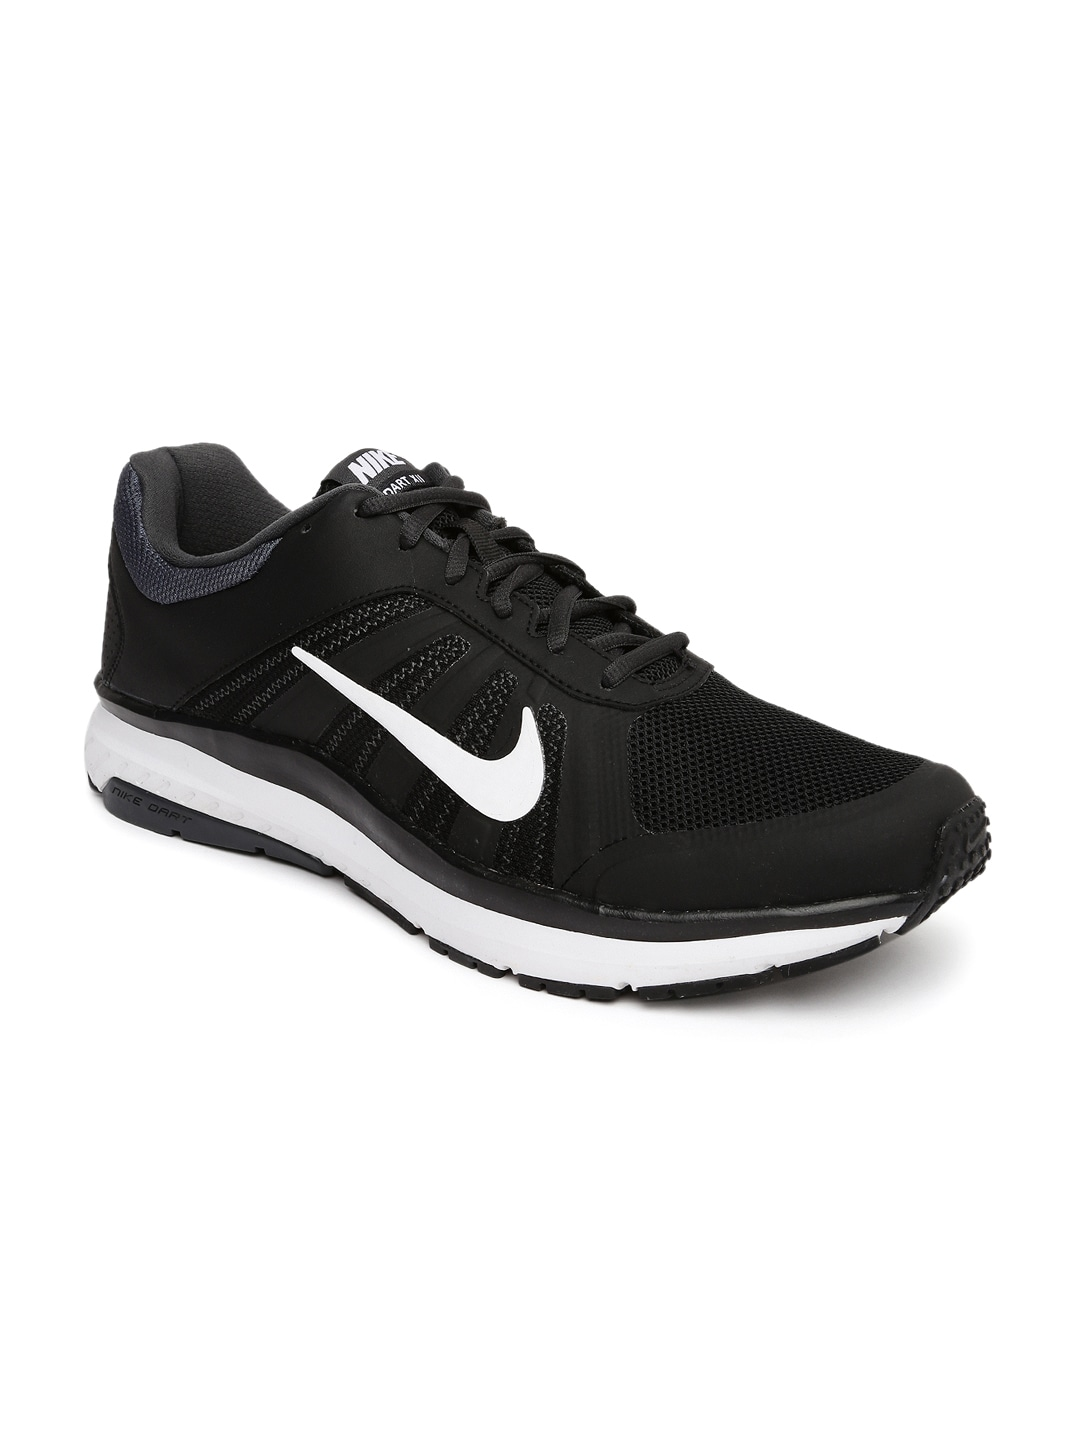 502e286d1543 Nike Shoes - Buy Nike Shoes for Men   Women Online